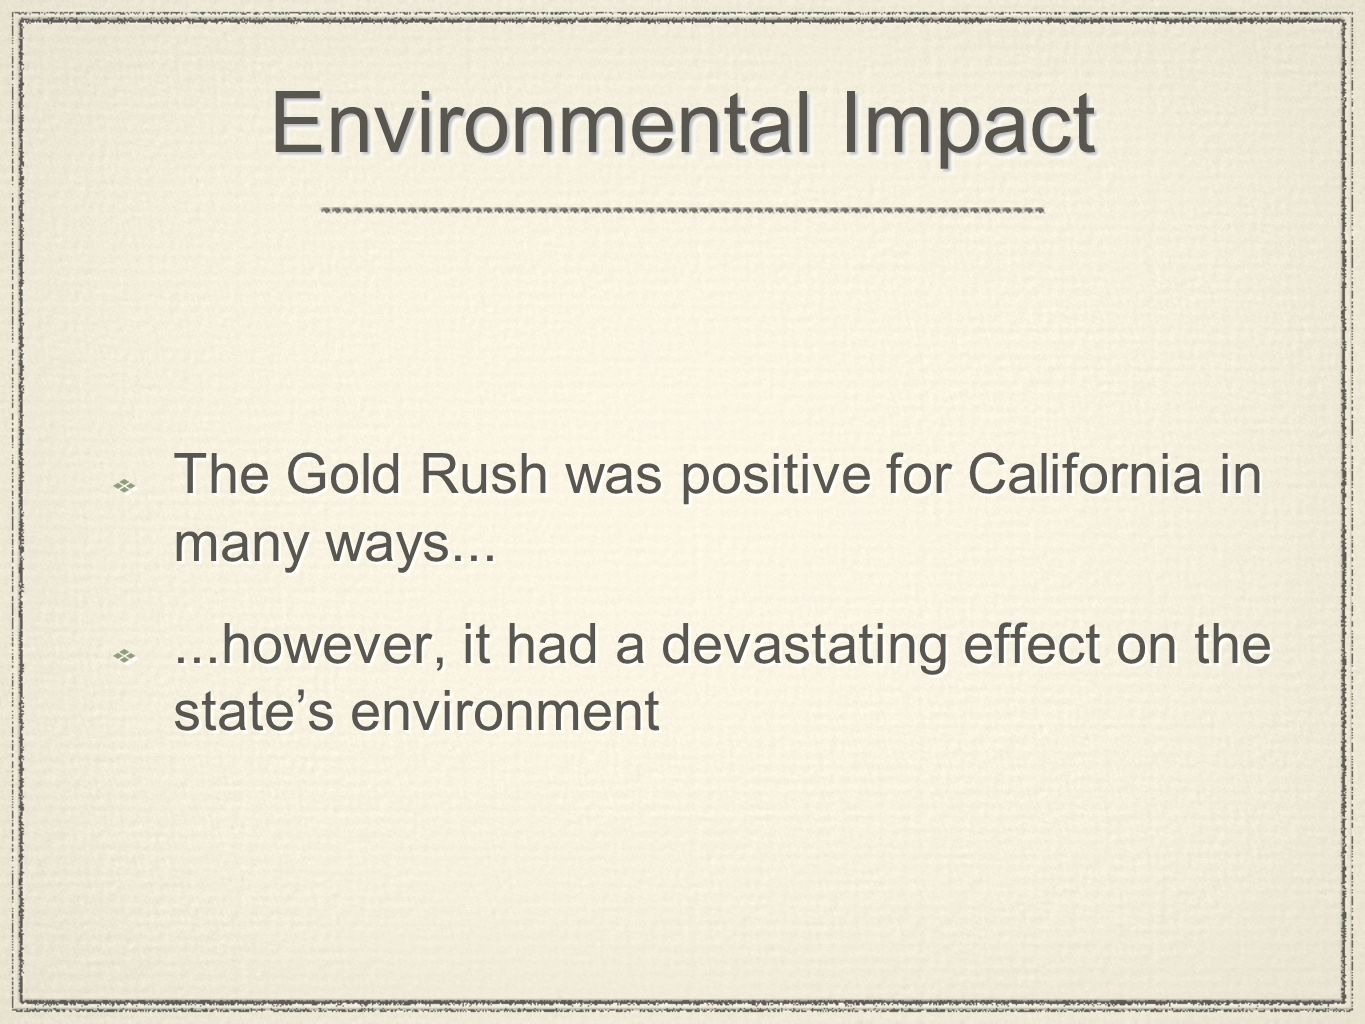 Environmental Impact The Gold Rush was positive for California in many ways...